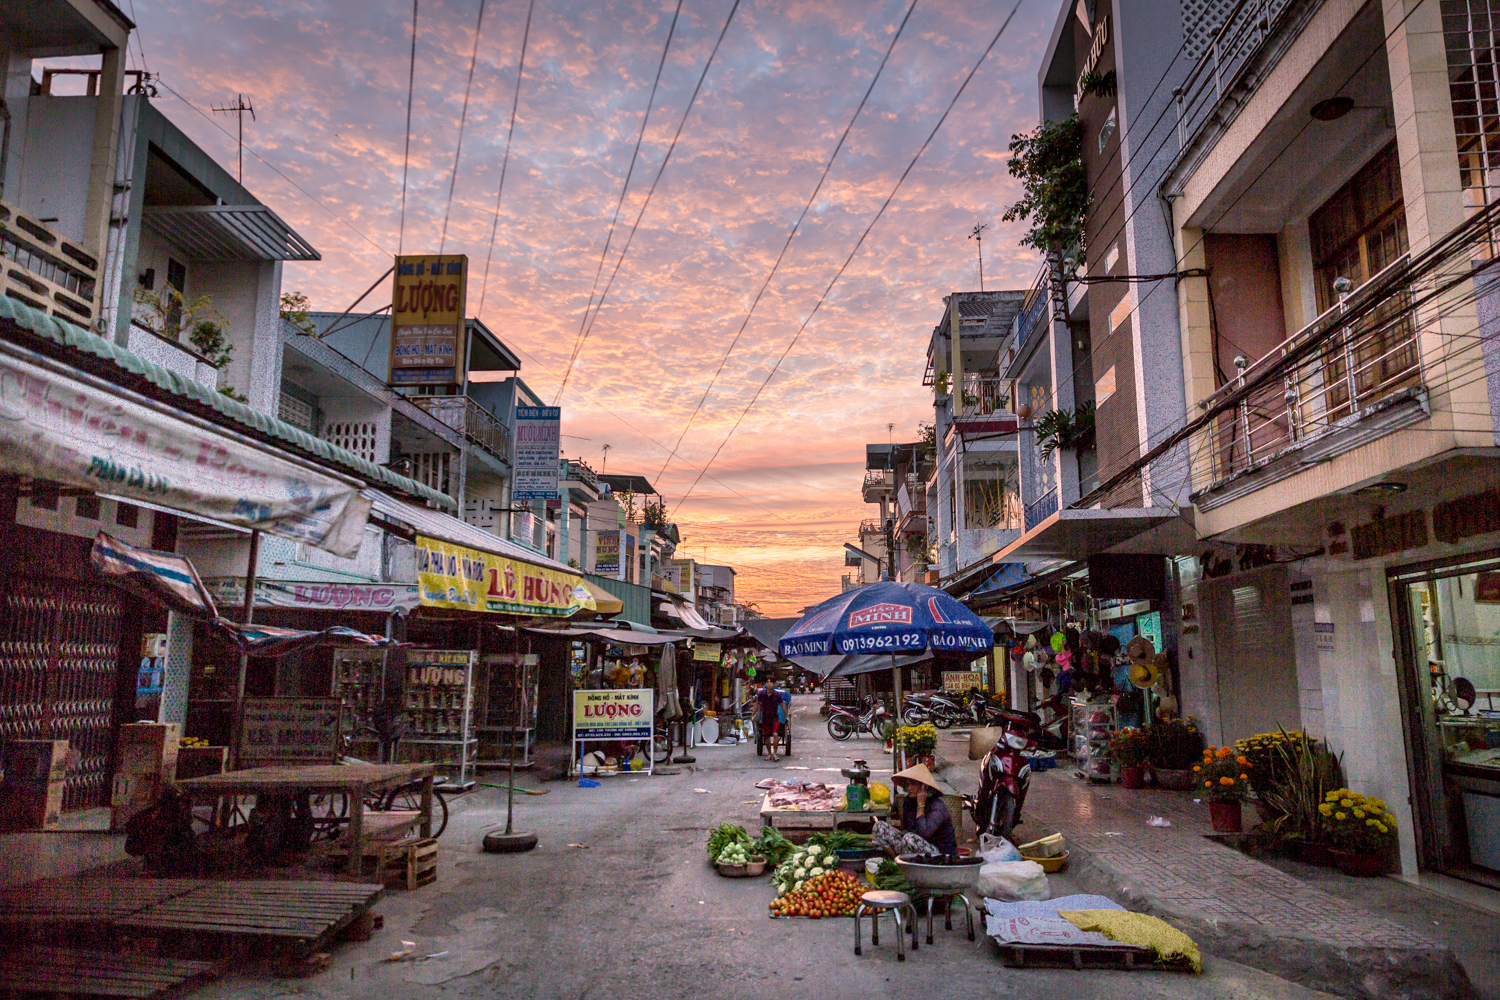 cai-be-street-sunrise-vinh-long-vietnam.jpg